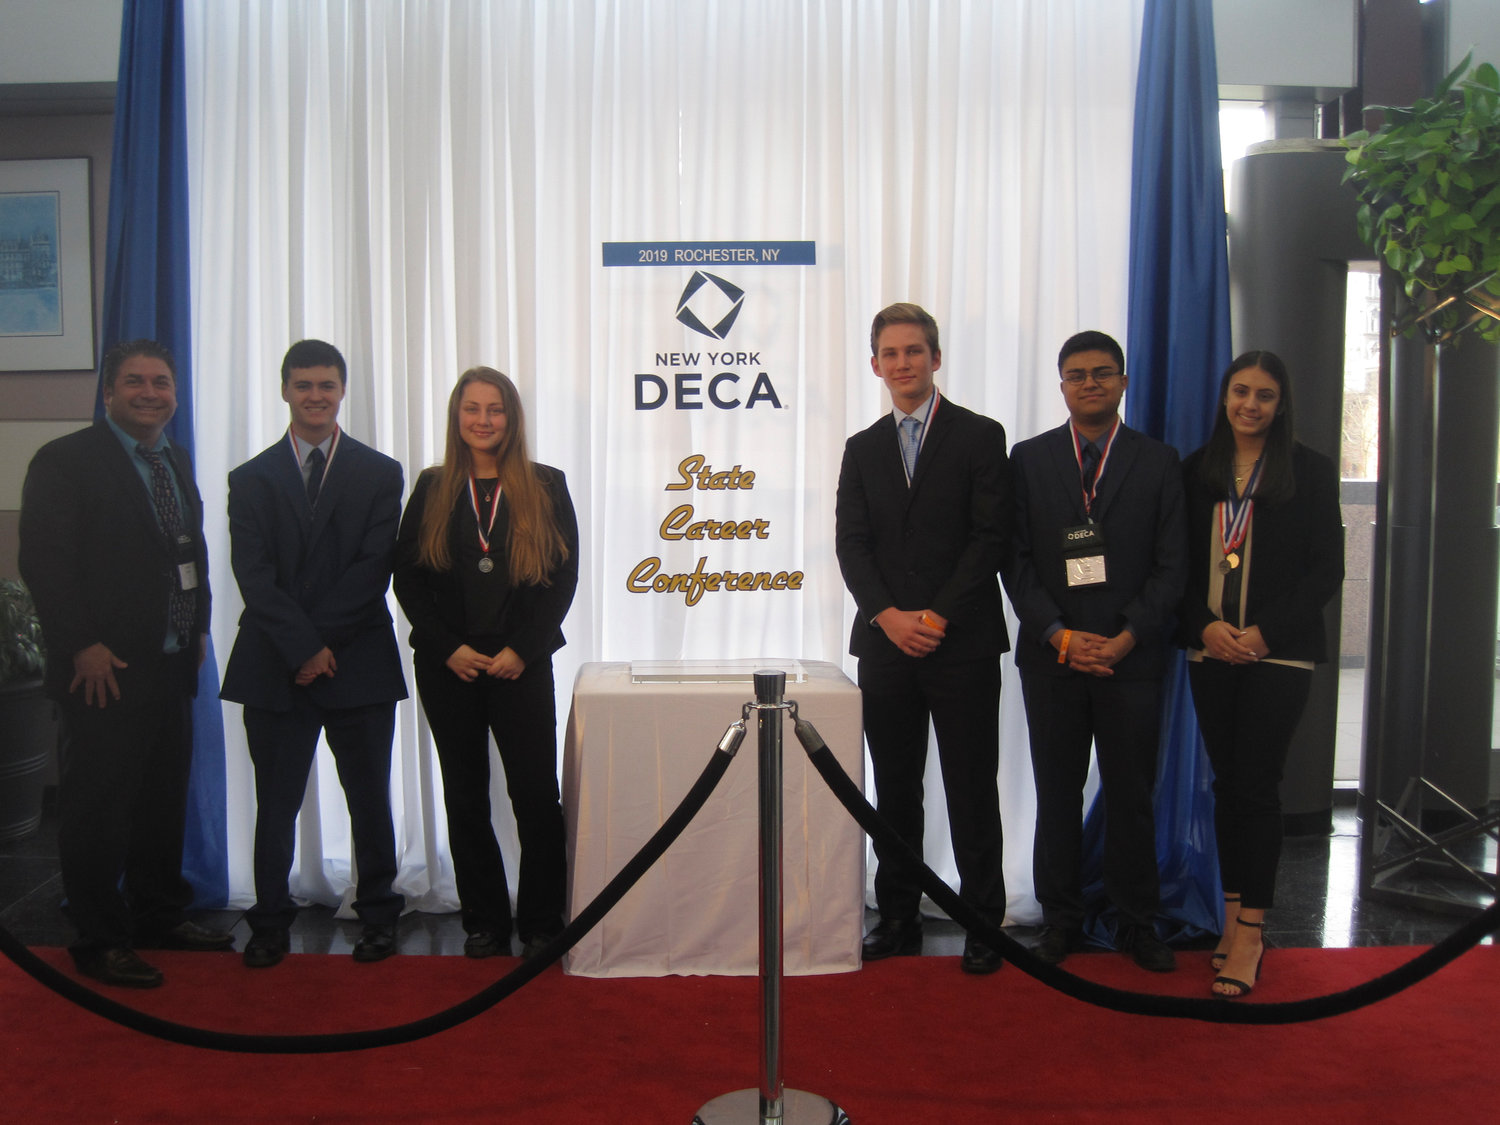 At the DECA State Career Conference in Rochester from left were club adviser Mark Albin, and students John Loughlin Jr., Brooke Kirchner, Luke Kirchner, Amil Virani and Danielle Hance.